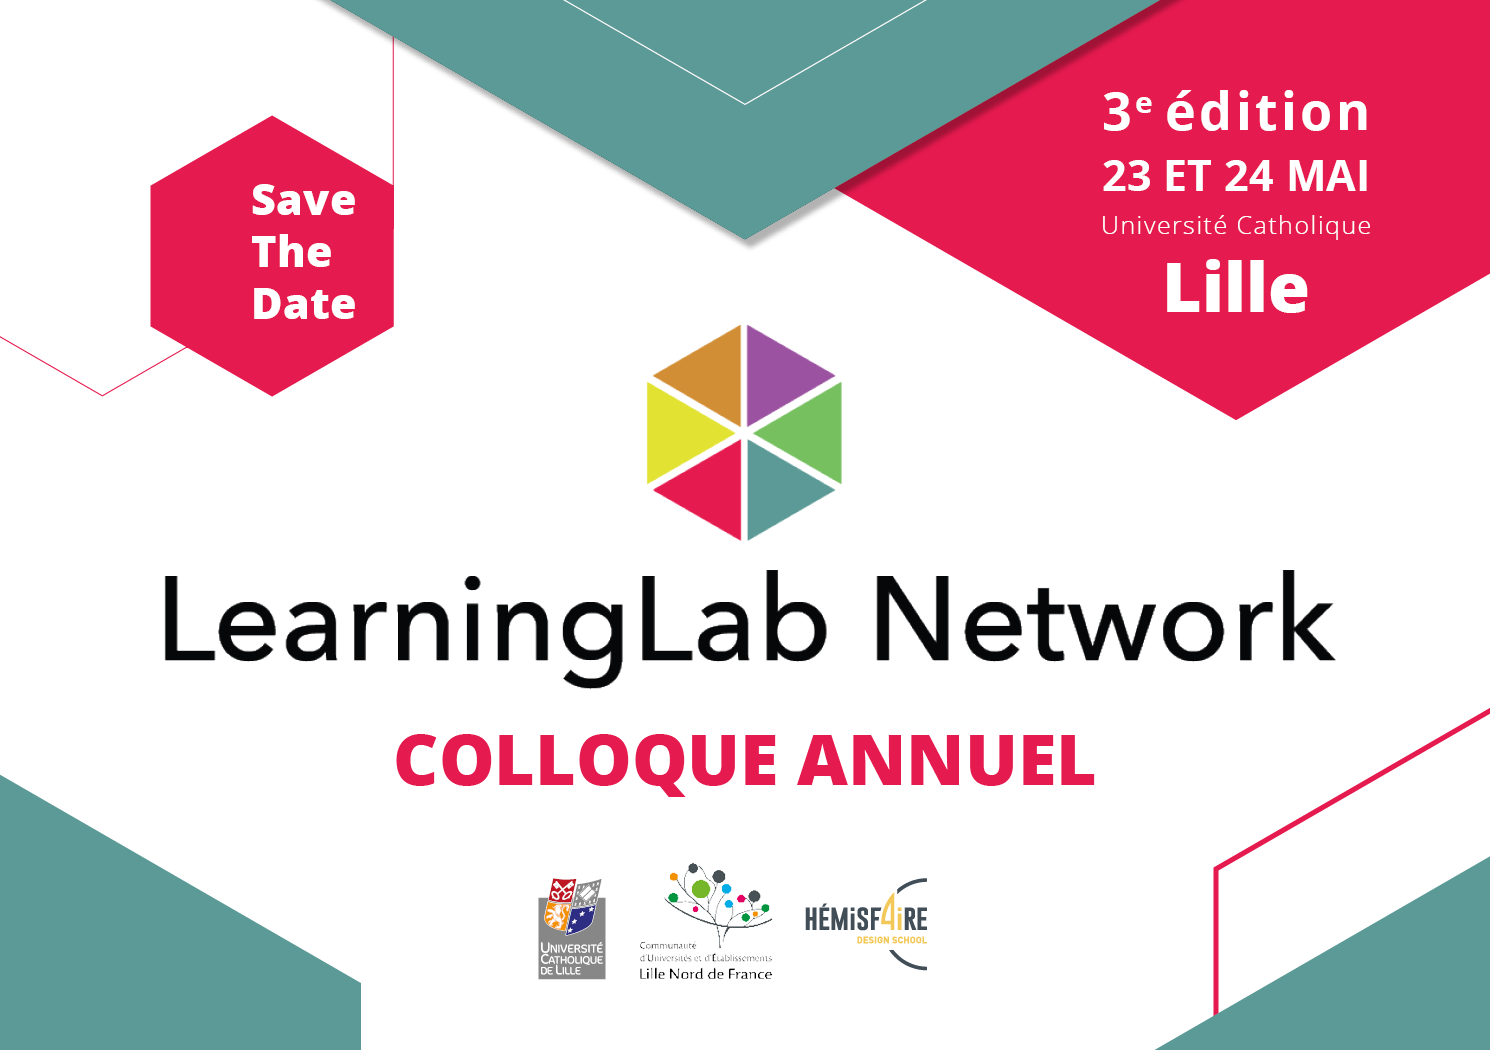 colloque LearningLab Network